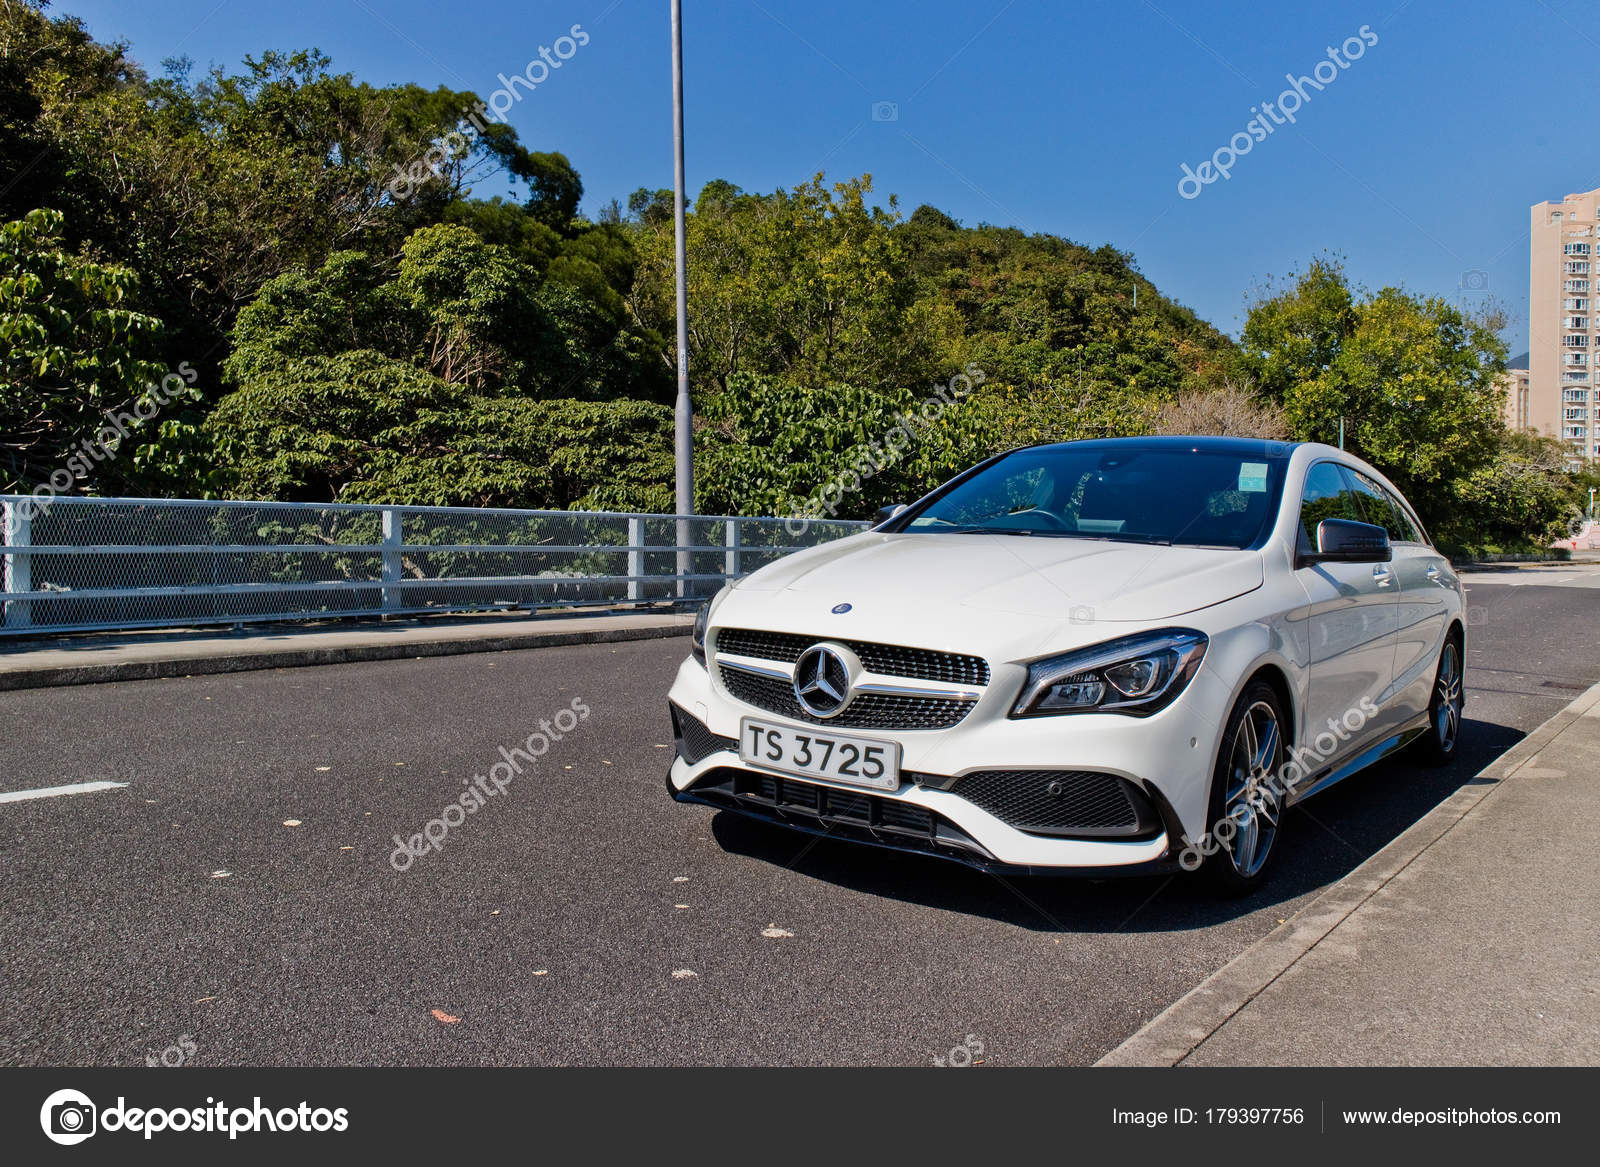 Mercedes-Benz CLA Shooting Brake 2017 Test Drive Day – Stock ...